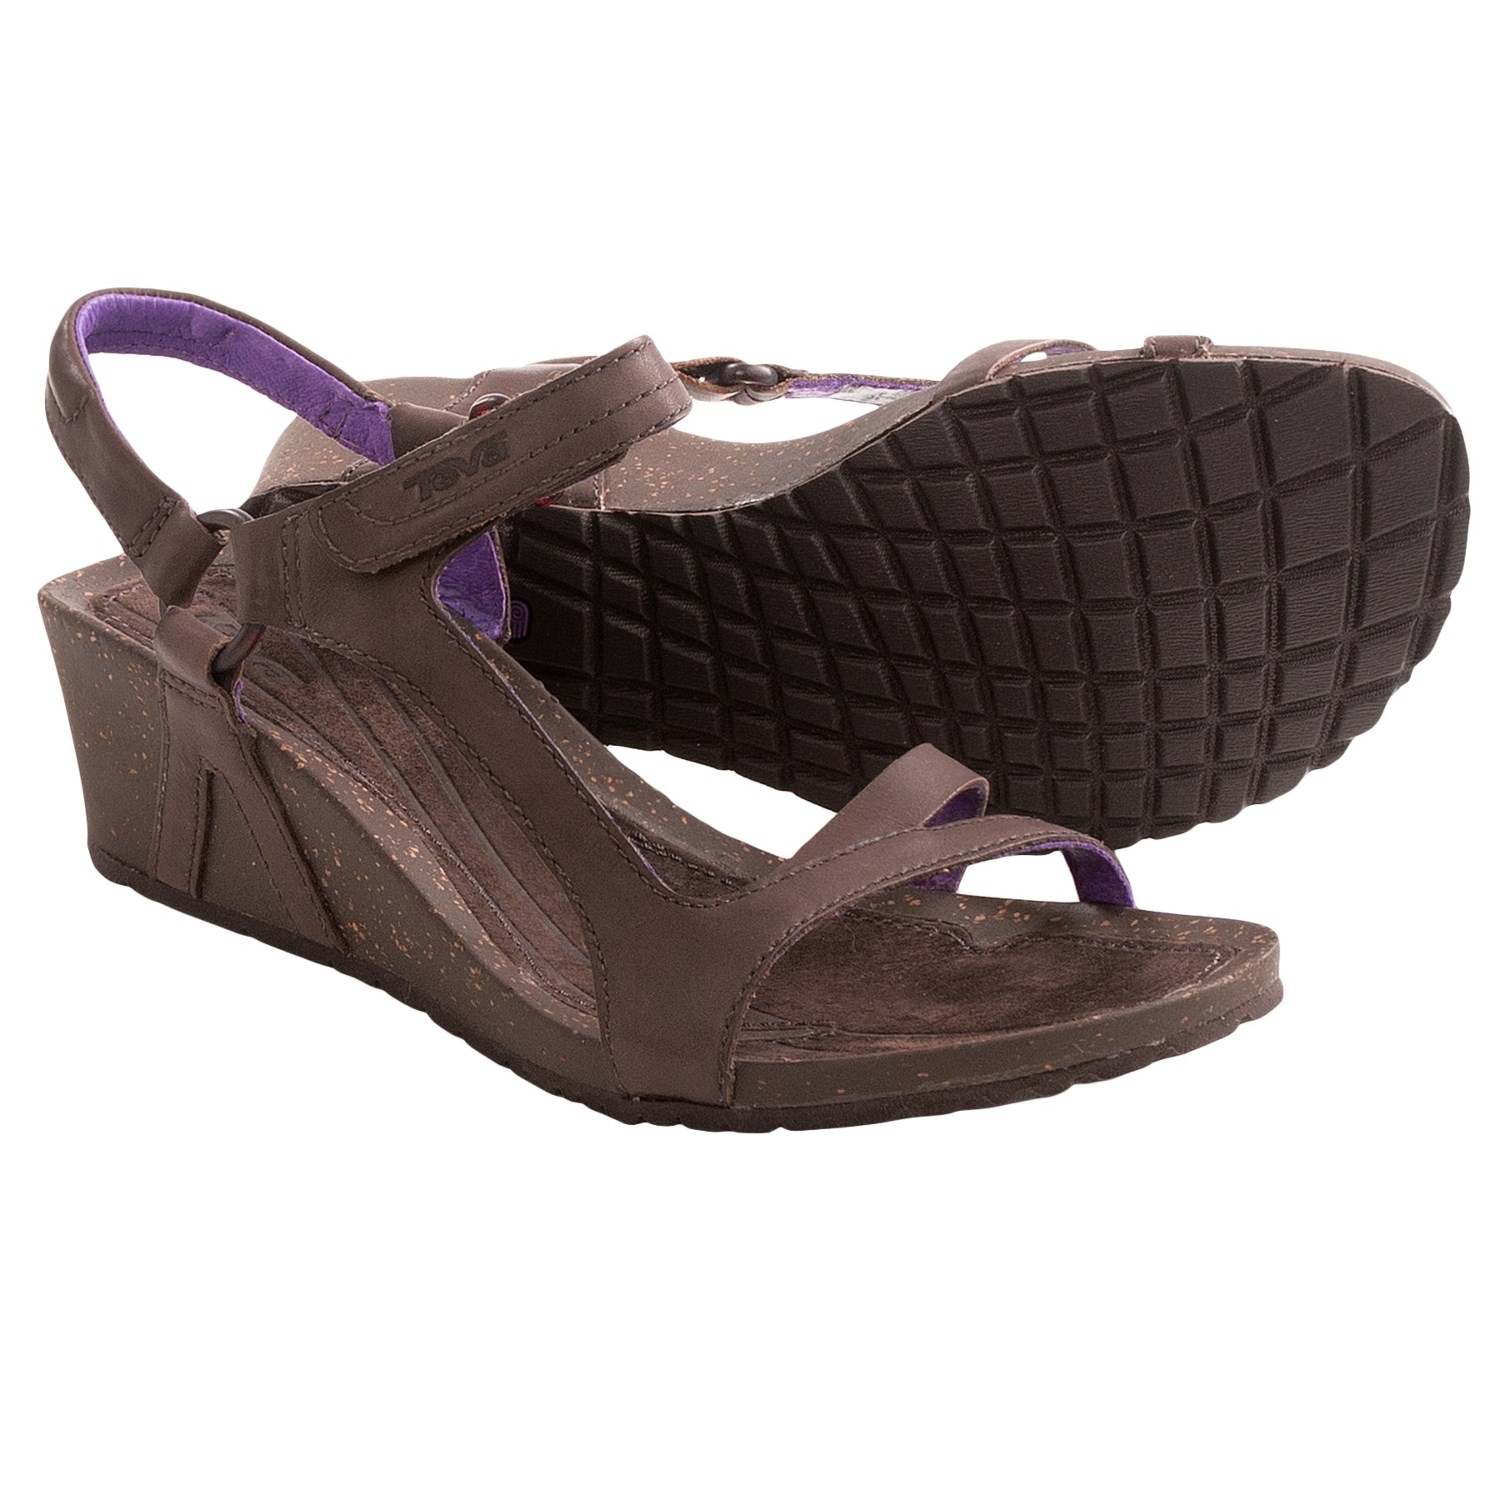 Teva Cabrillo Universal Wedge Sandals For Women 7860a